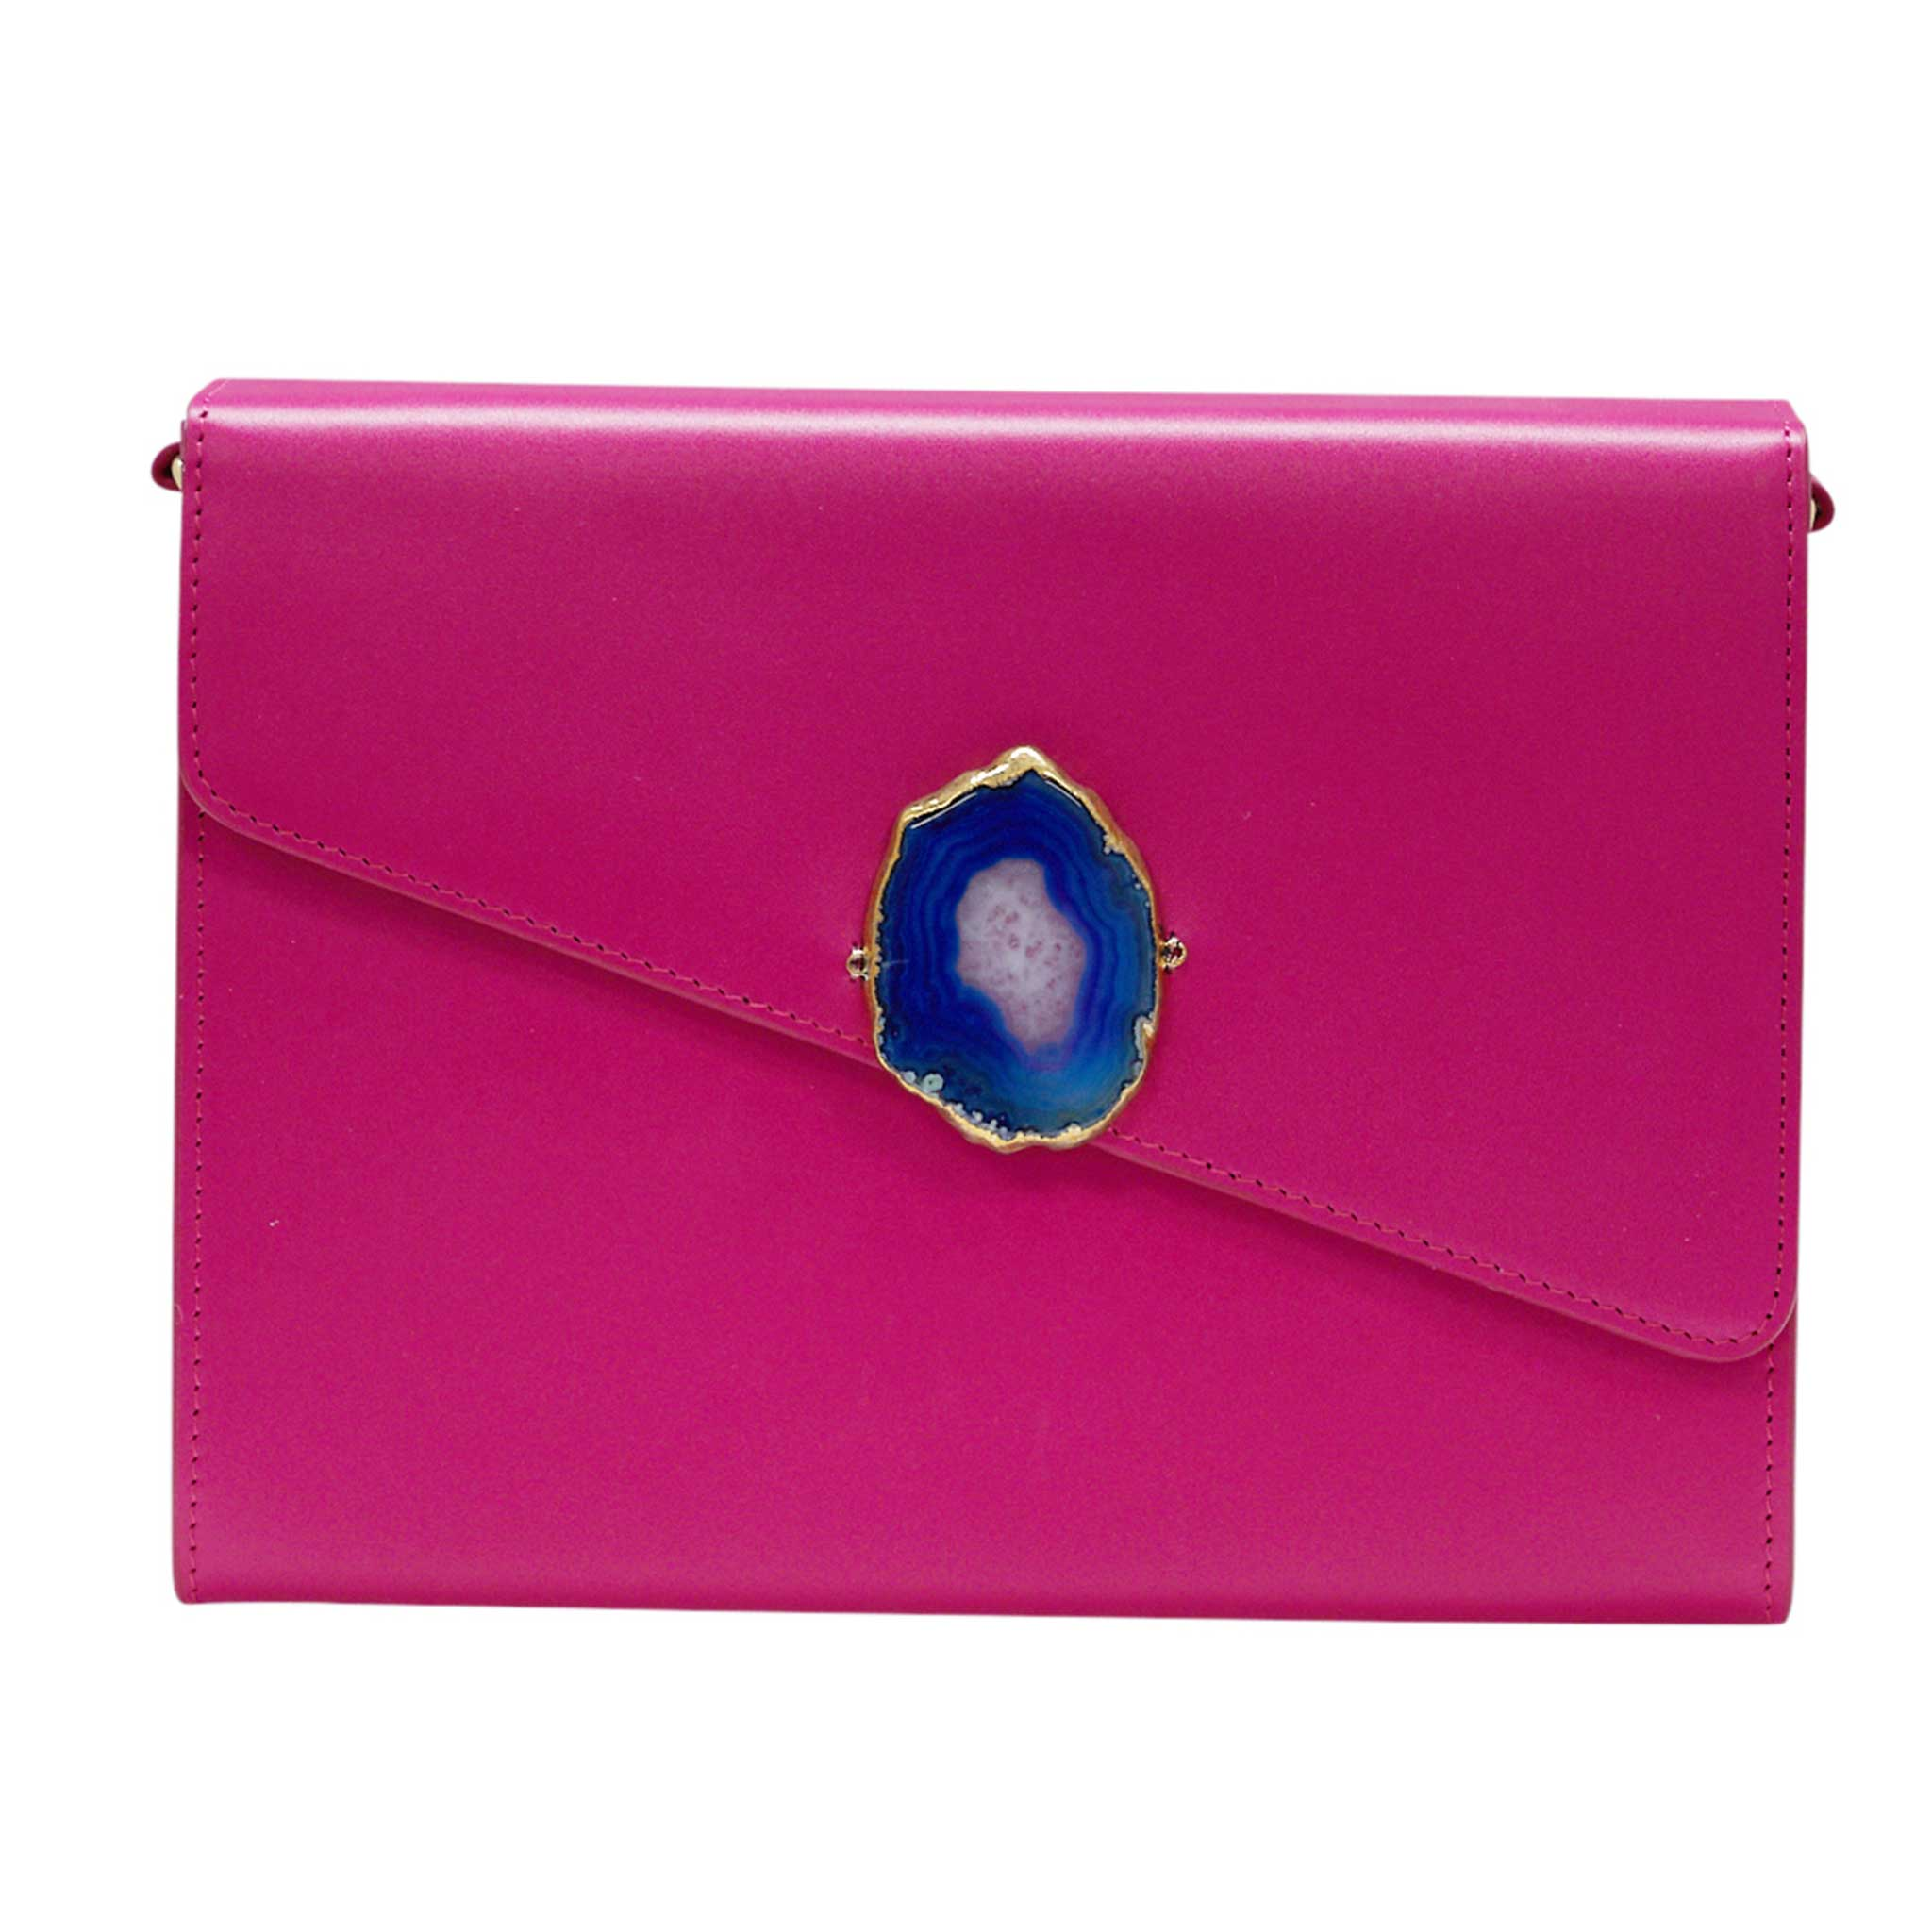 LOVED BAG - PINK RUBY LEATHER WITH BLUE AGATE - 1.01.002.043